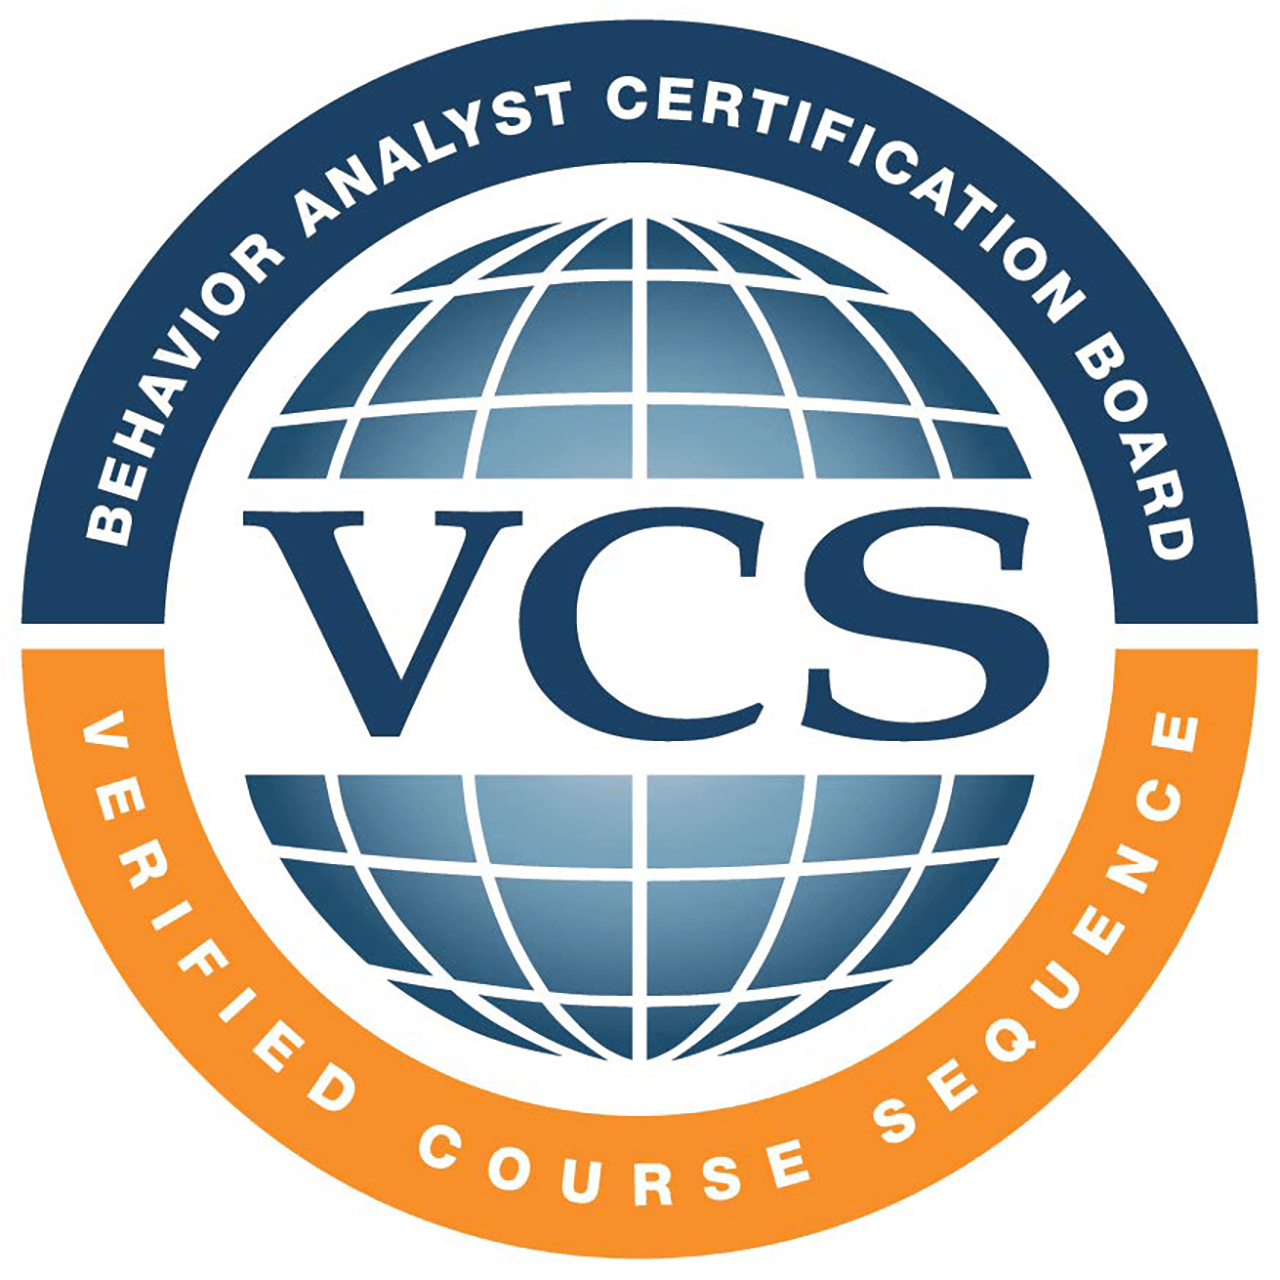 The BACB badge certifying that this program's course sequence meets the coursework requirements.